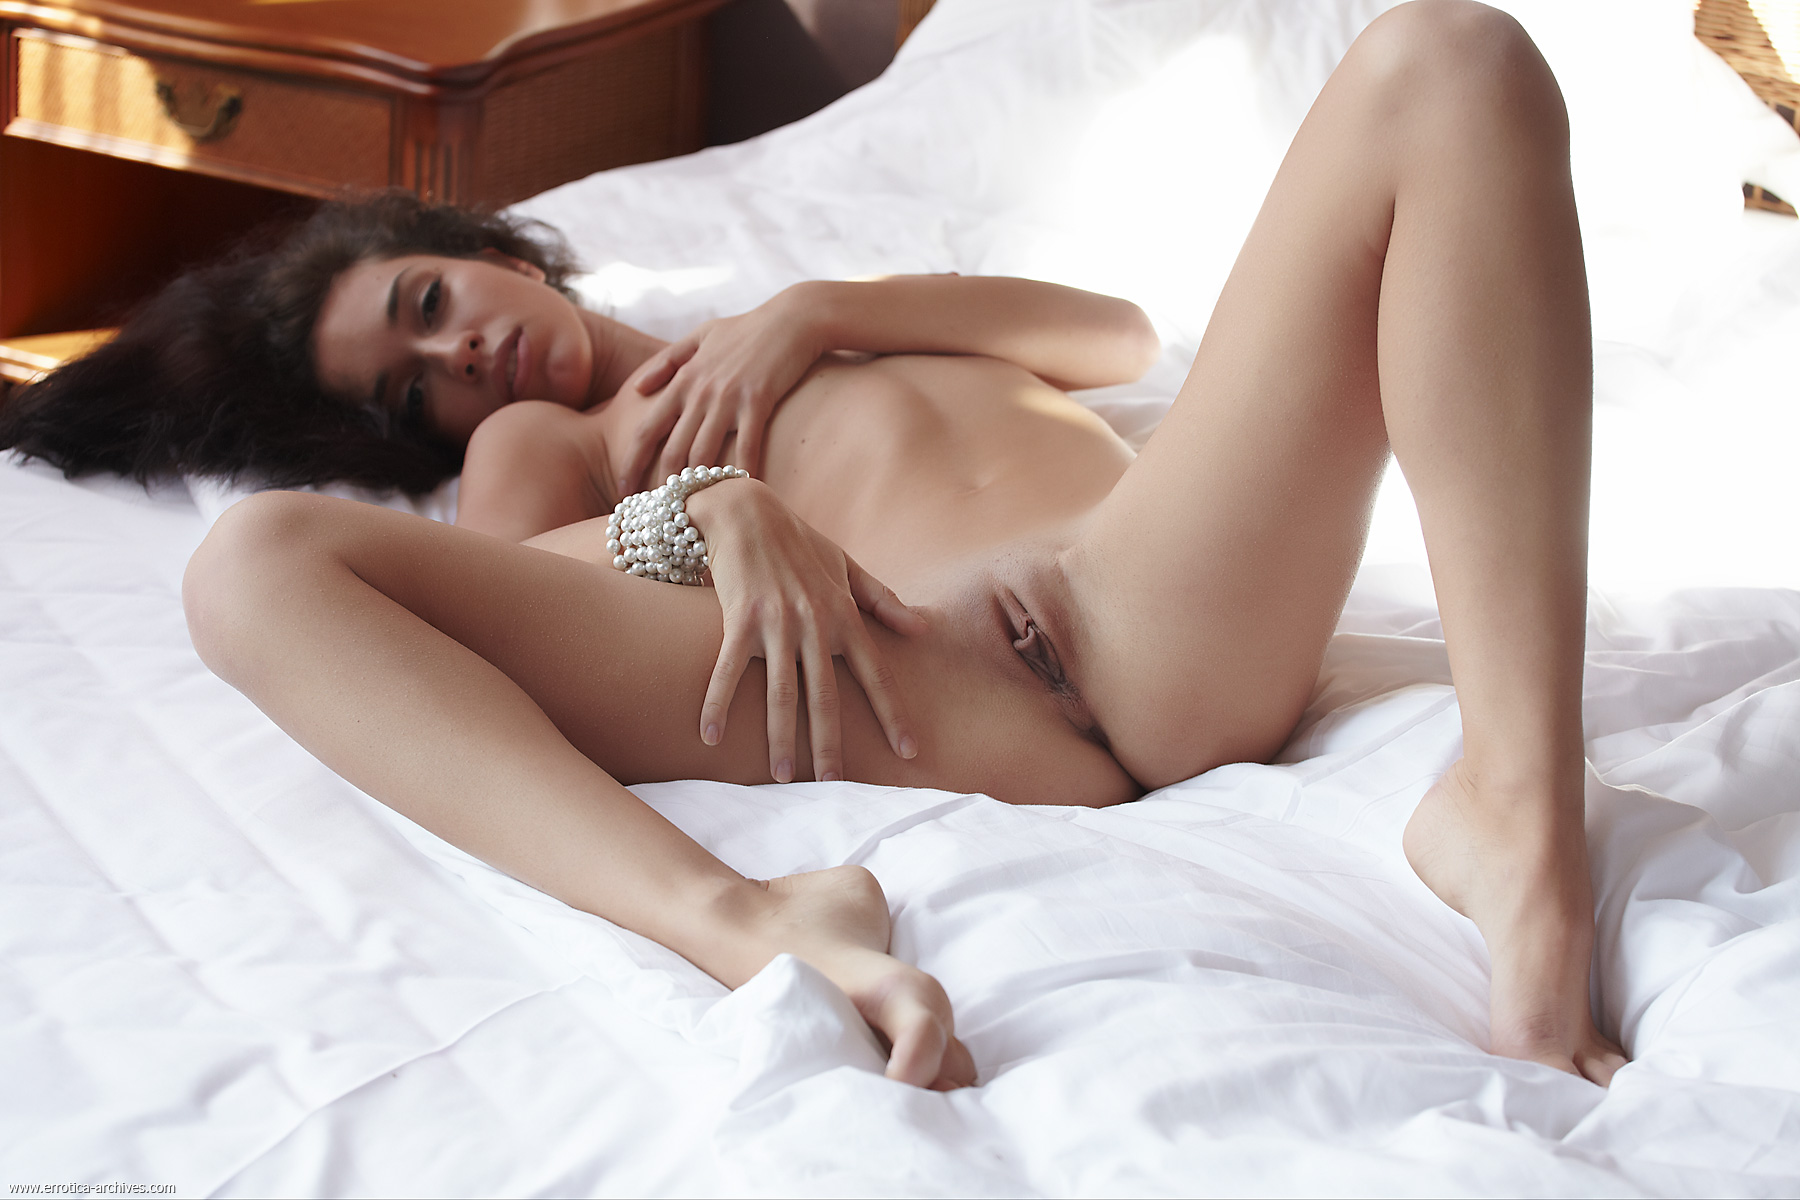 Teen partly shaved pussy